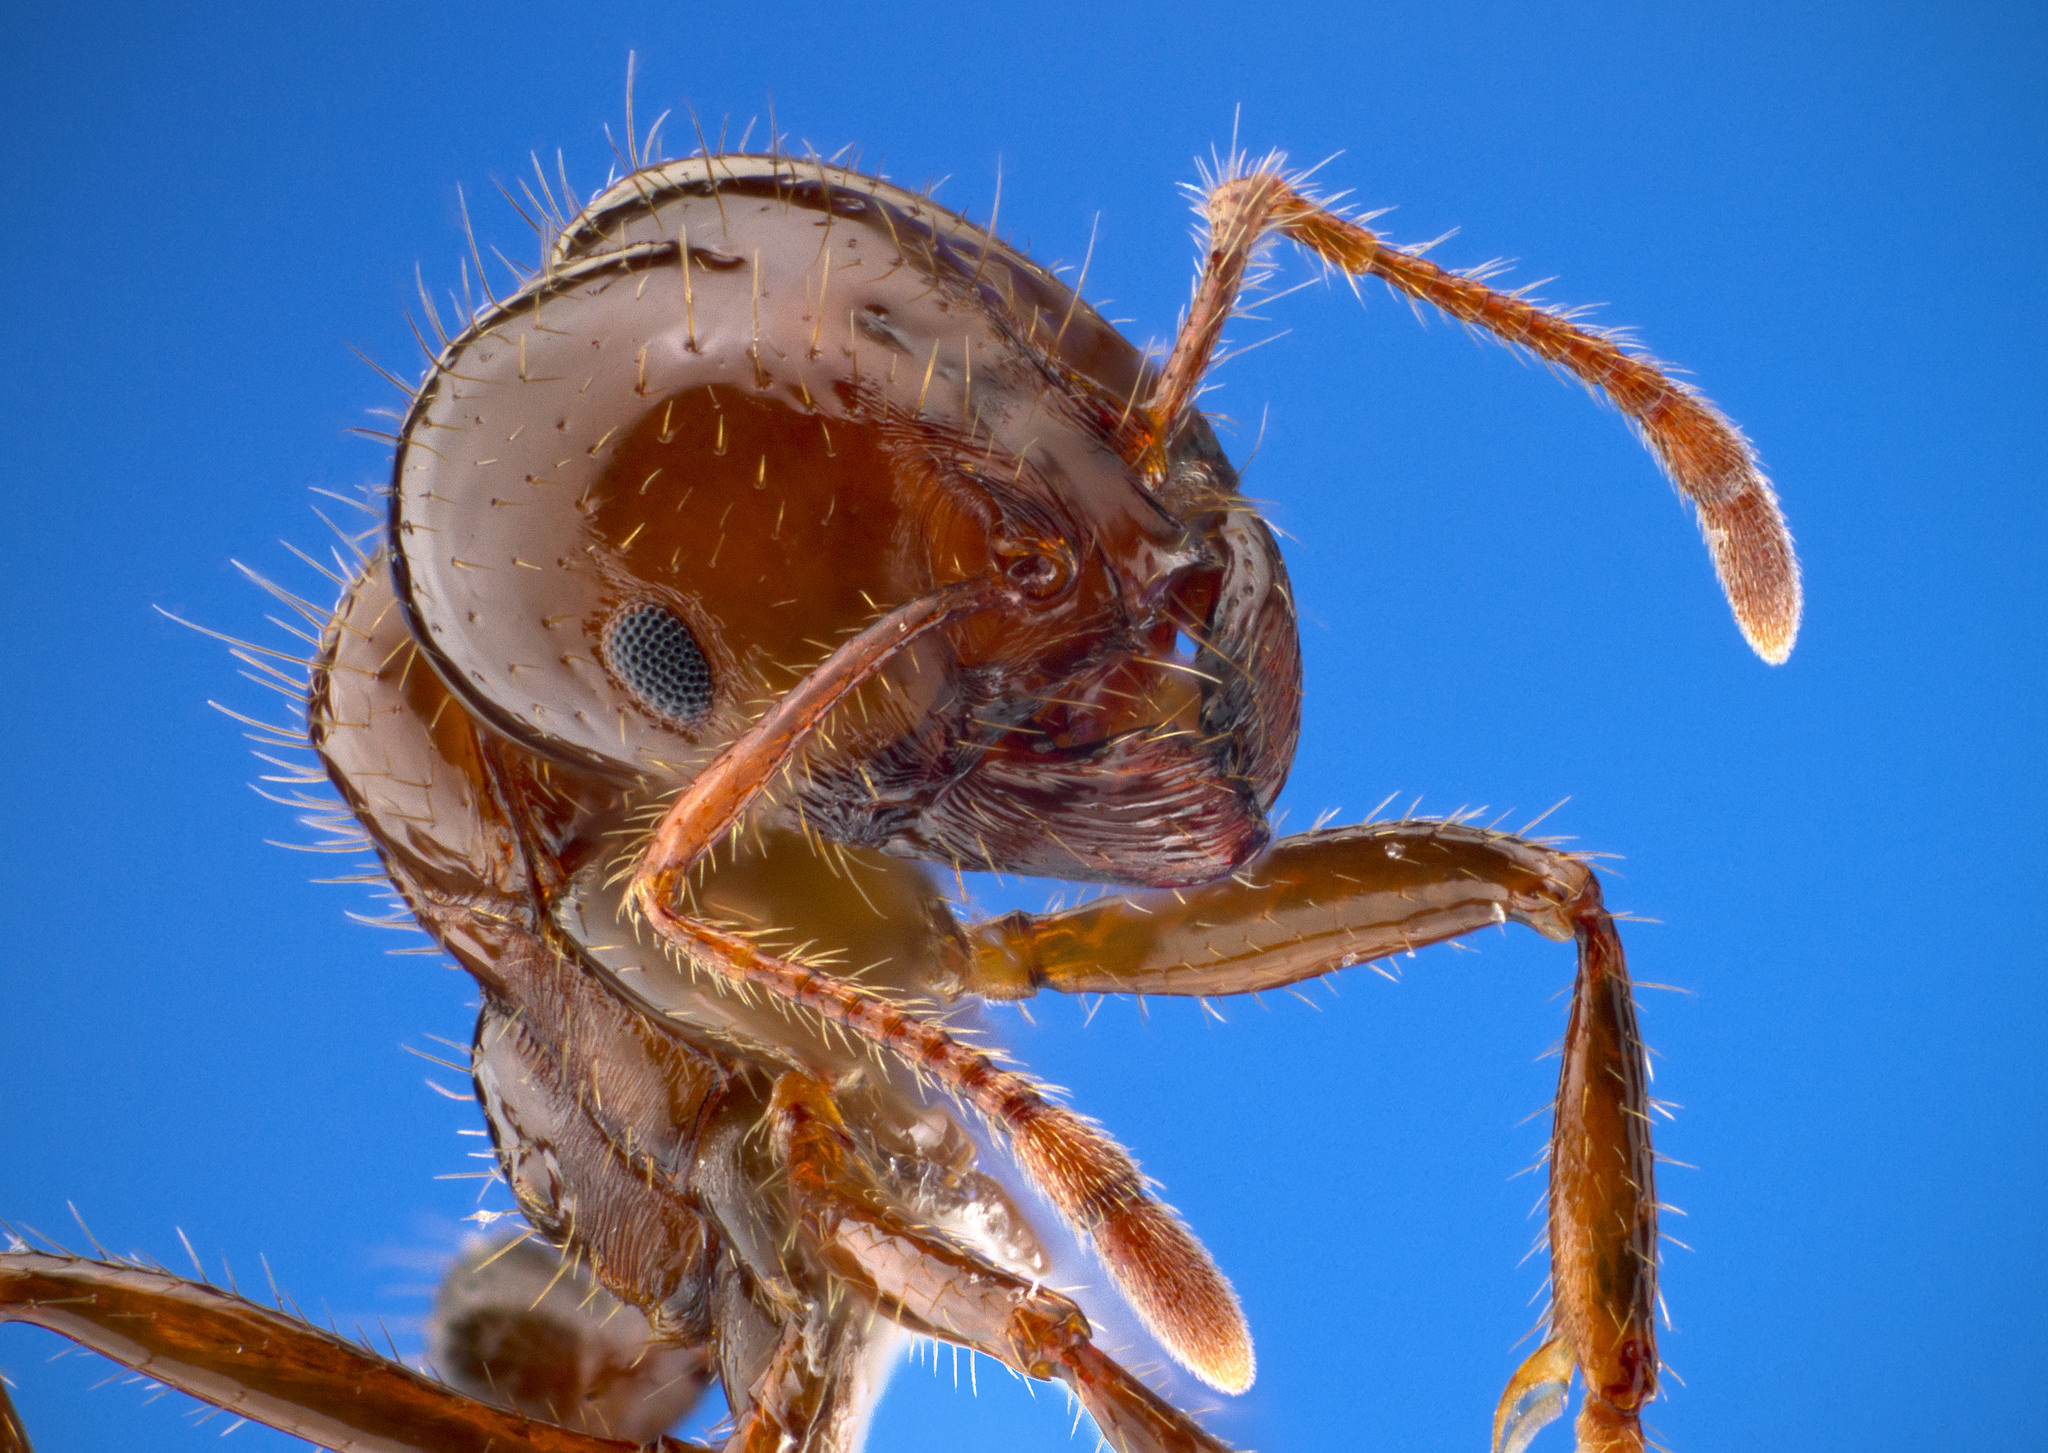 A fire ant.